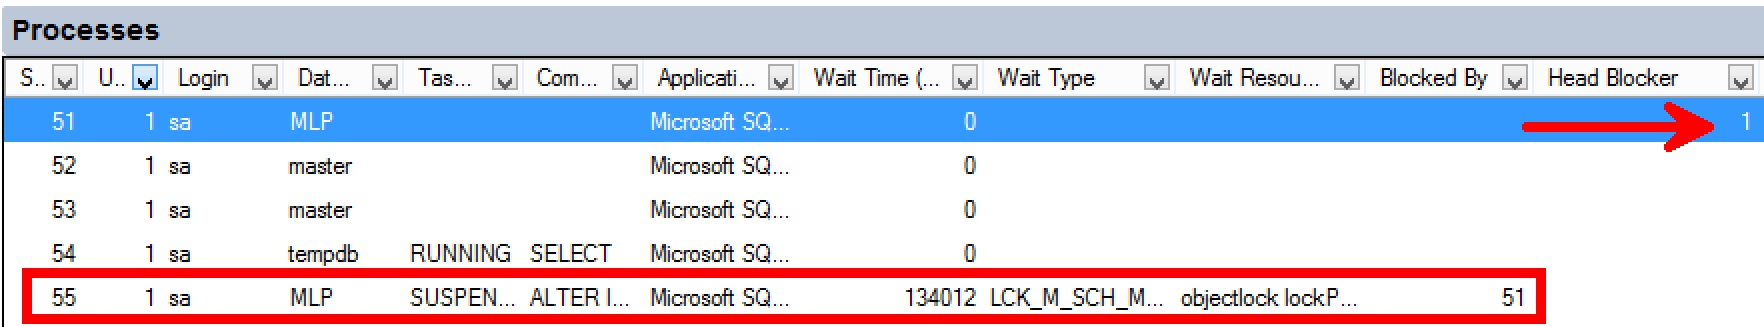 SQL SERVER - Activity Monitor to Identify Blocking - Find Expensive Queries 01-activity-monitor